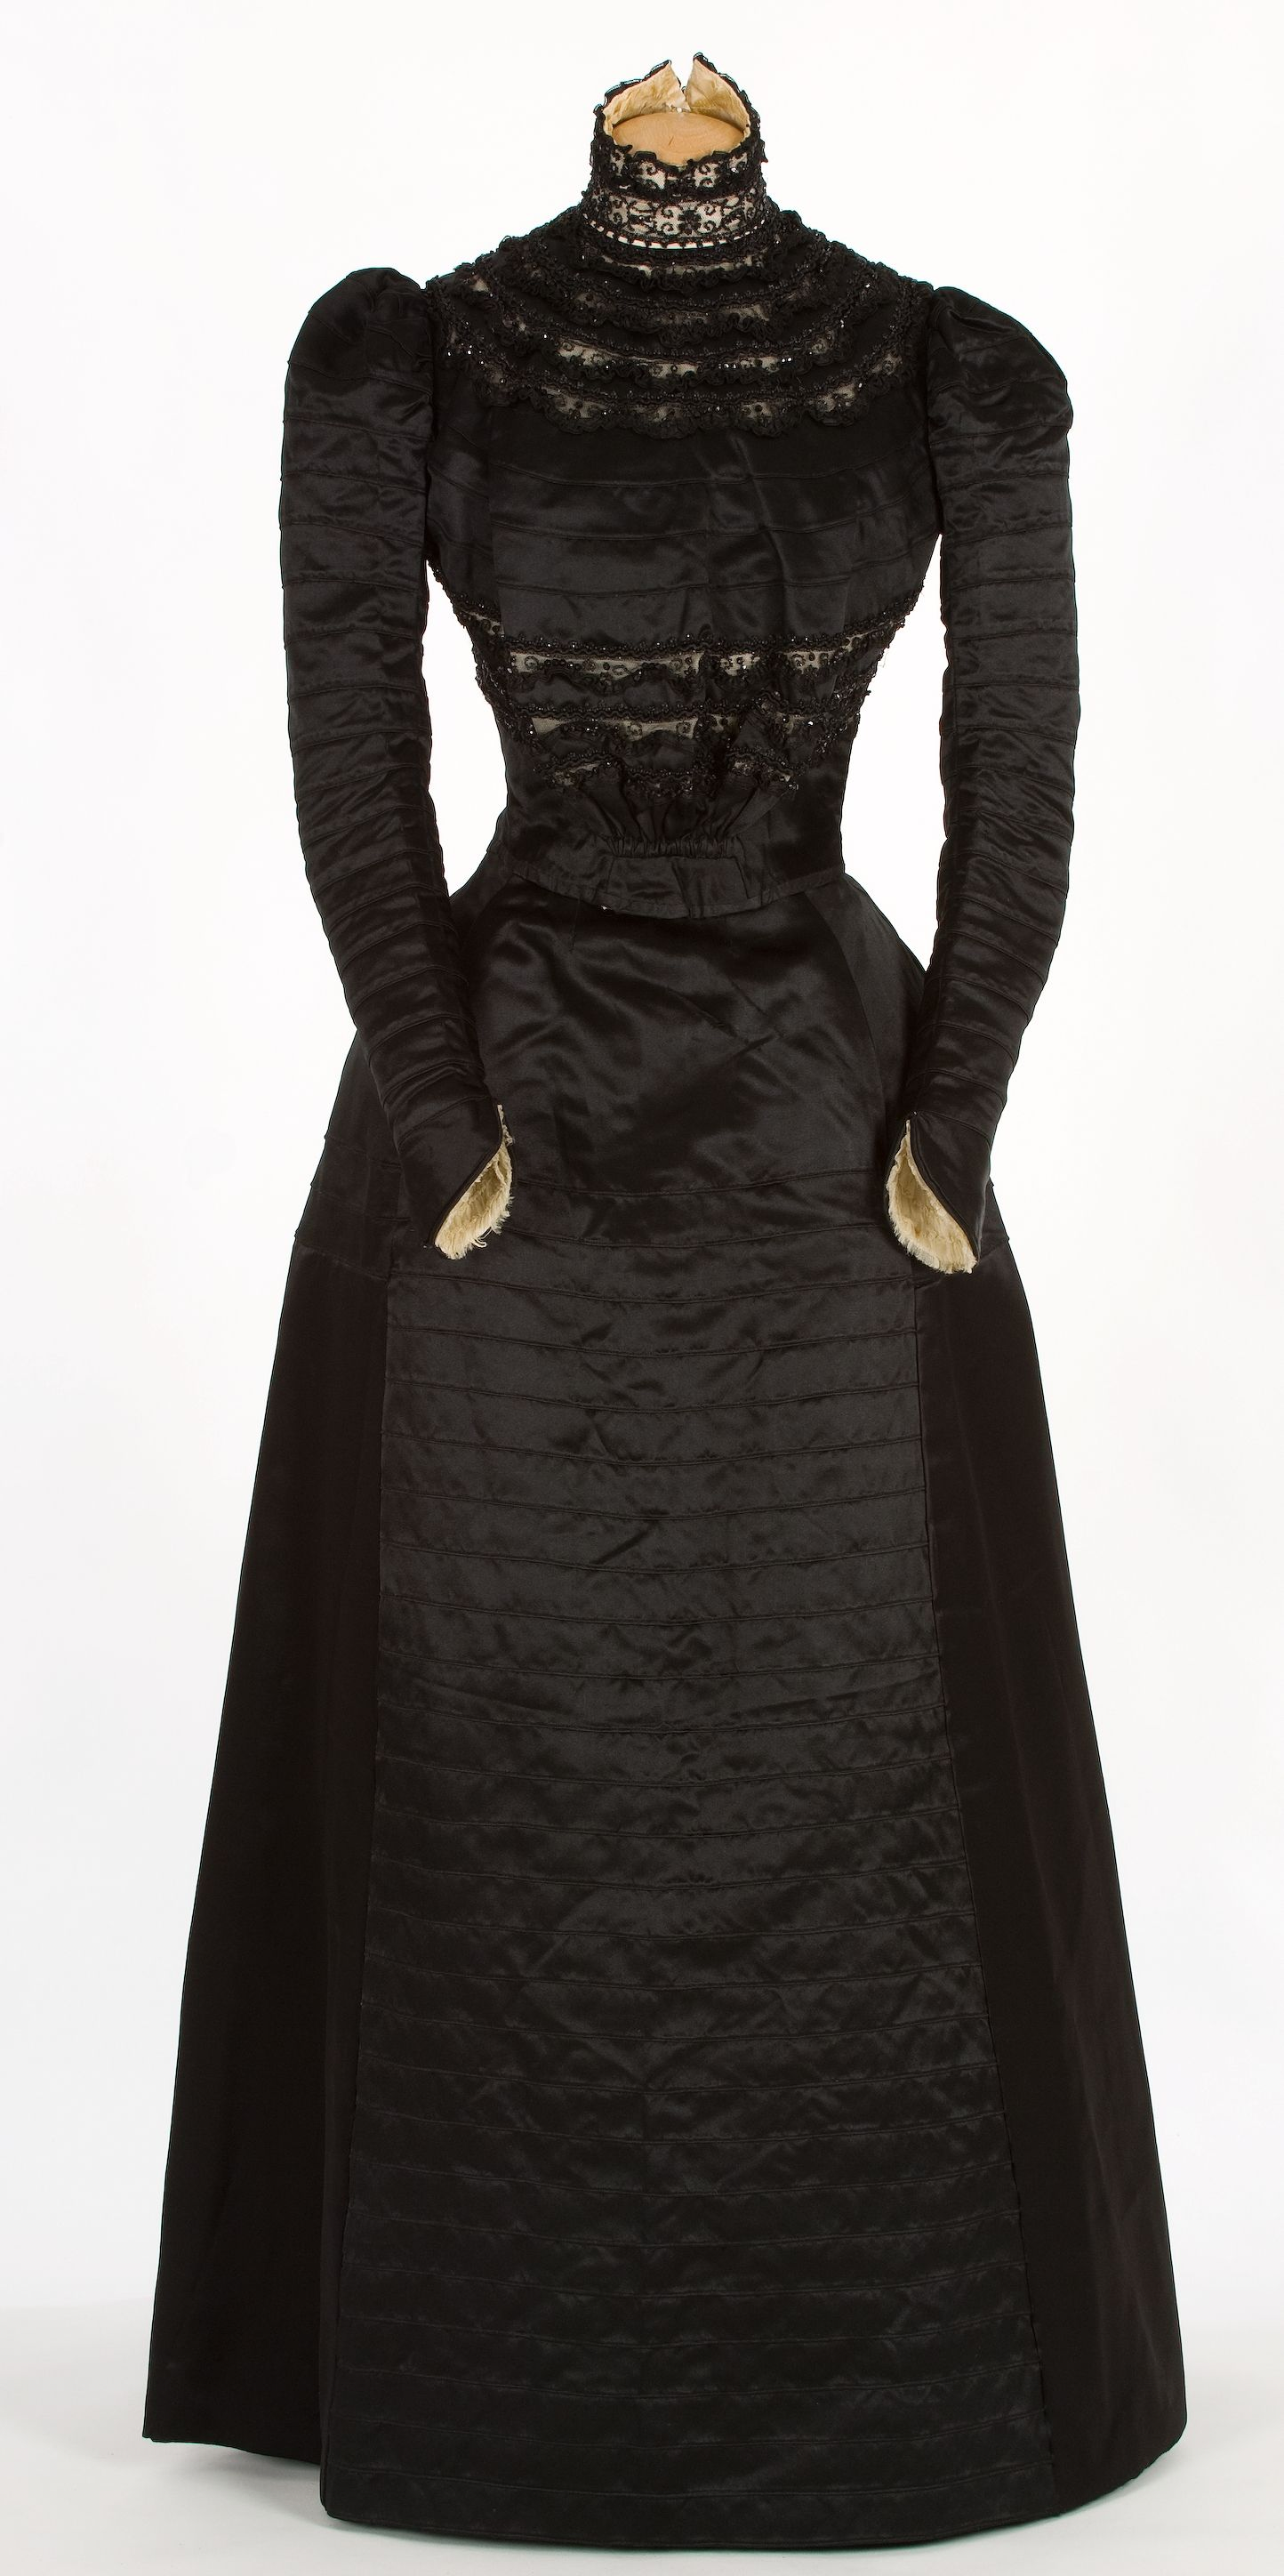 1895-1900 Black silk and tulle embroidered with jet Wedding Dress, María Molist, Spanish.